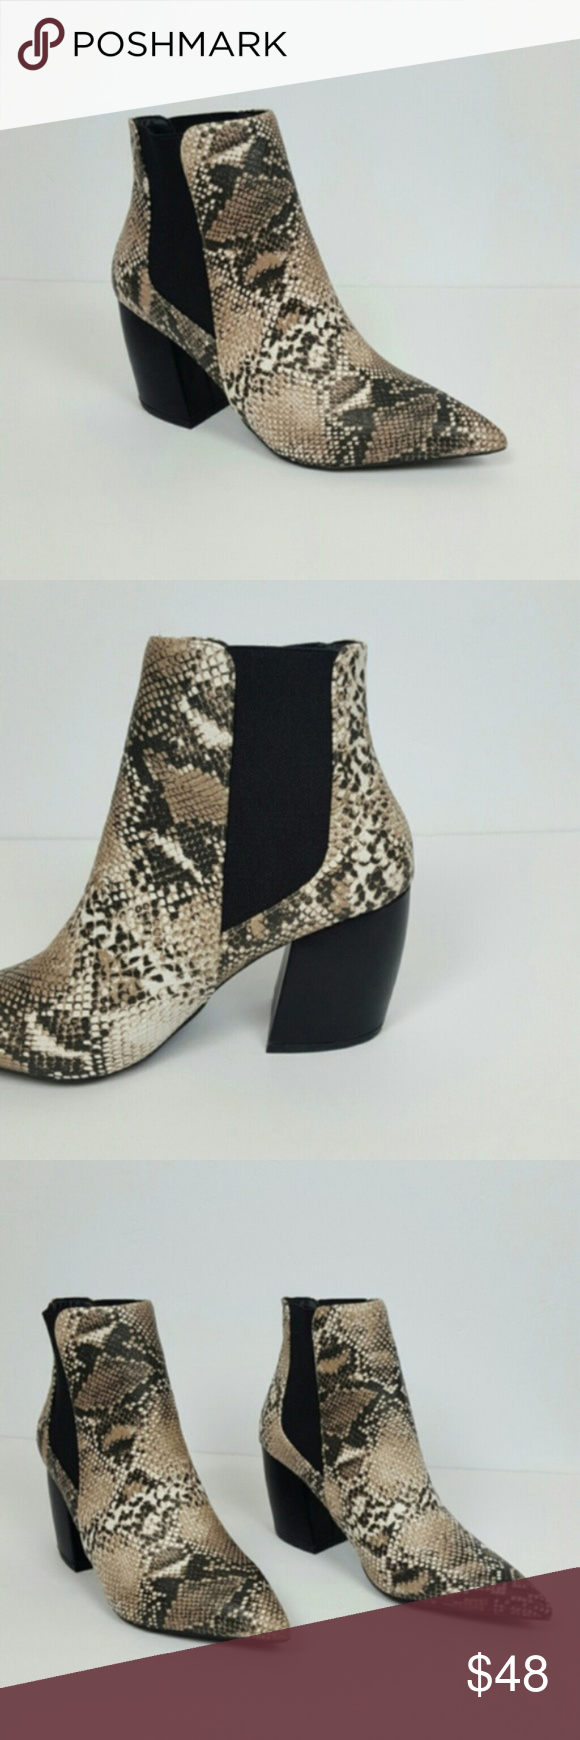 Women's Snake Print Ankle Boot Pointy Toe Love this New Style of Women`s Snake print Ankle Boot  Color Brown - Black Perfect to complement your favorite outfit and be ready for the day! Material: PU LEATHER Heel high : 3 Shoes Ankle Boots & Booties #snakeprintbootsoutfit